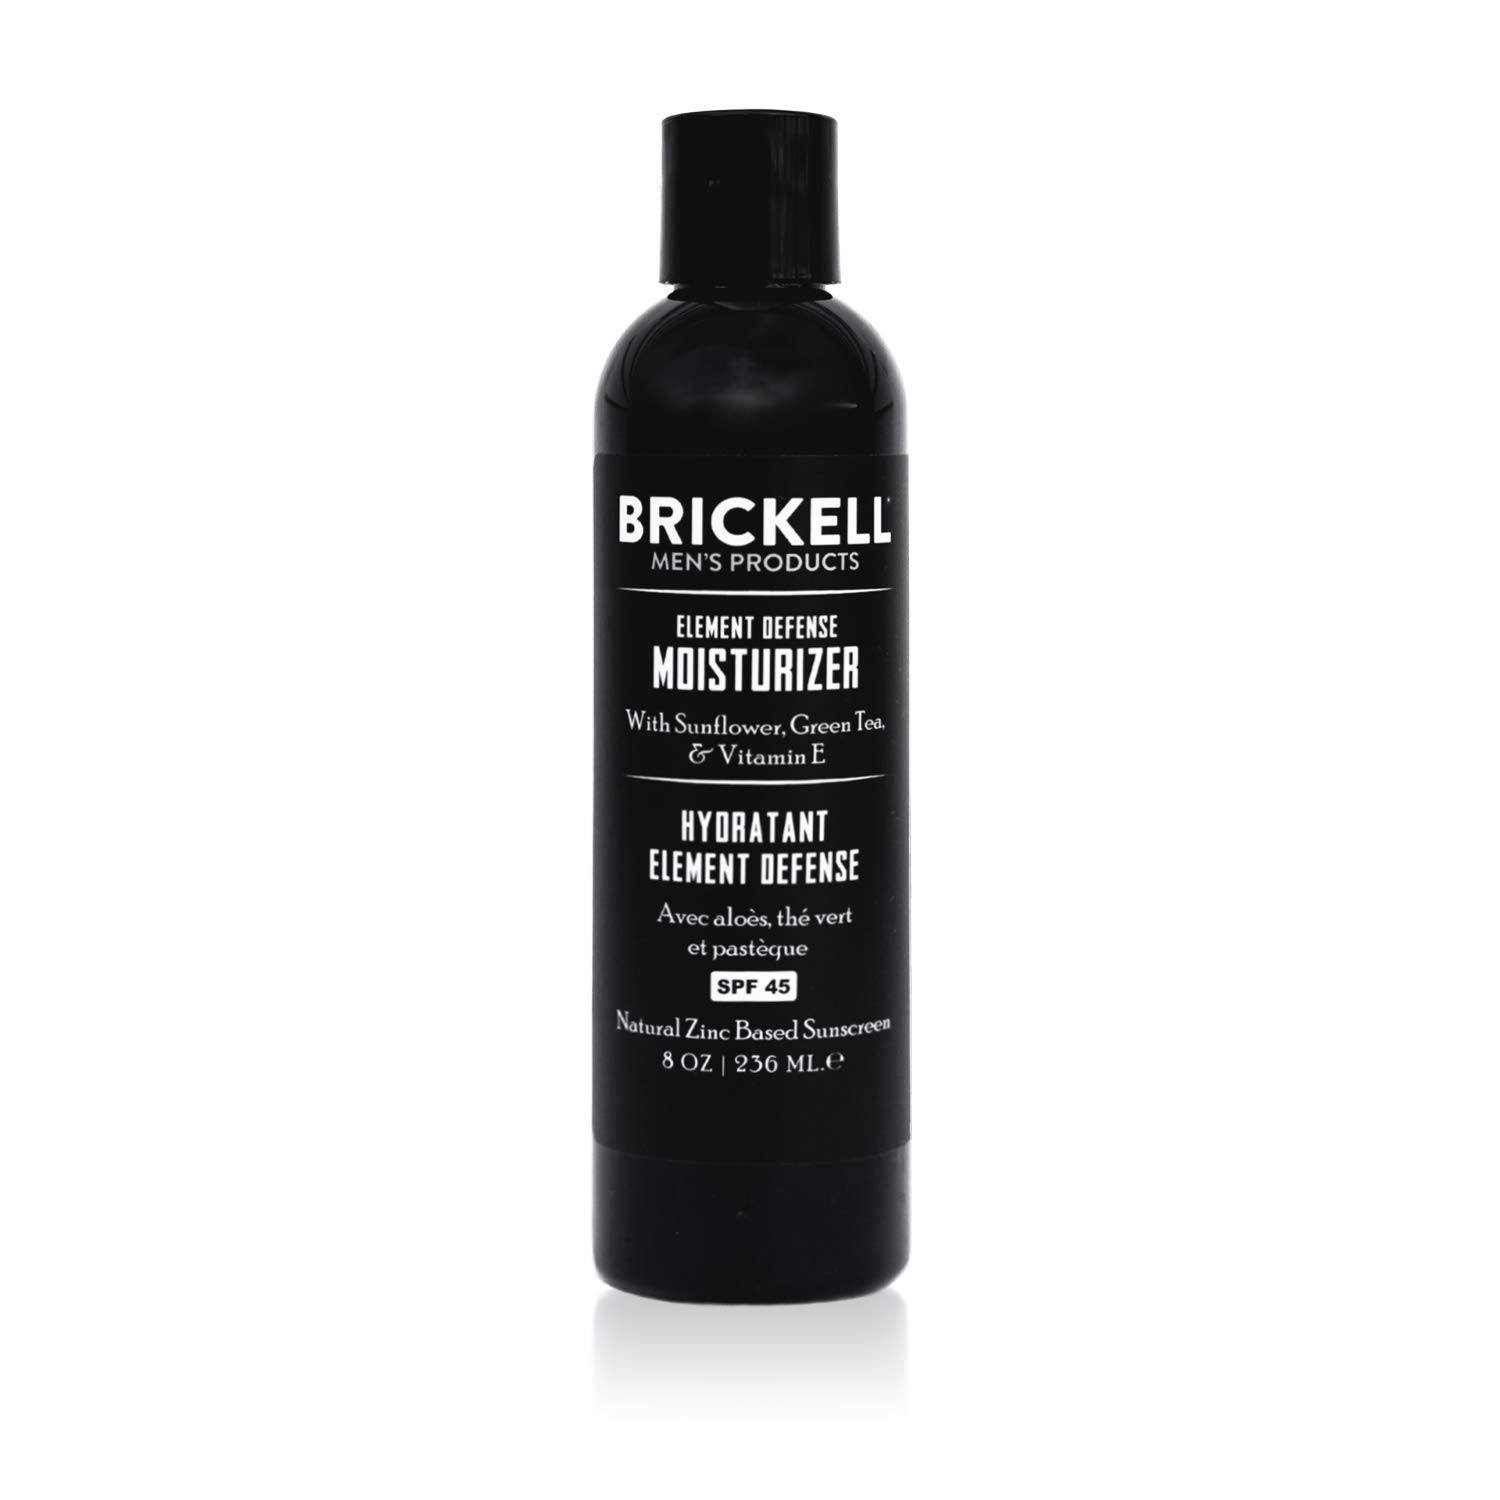 Brickell Mens's Element Defense Moisturizer with SPF45 for Men, Natural & Organic, Zinc SPF45 Sunscreen, Hydrates and Protects Skin Against UVA/UVB Rays, 8 oz, Unscented